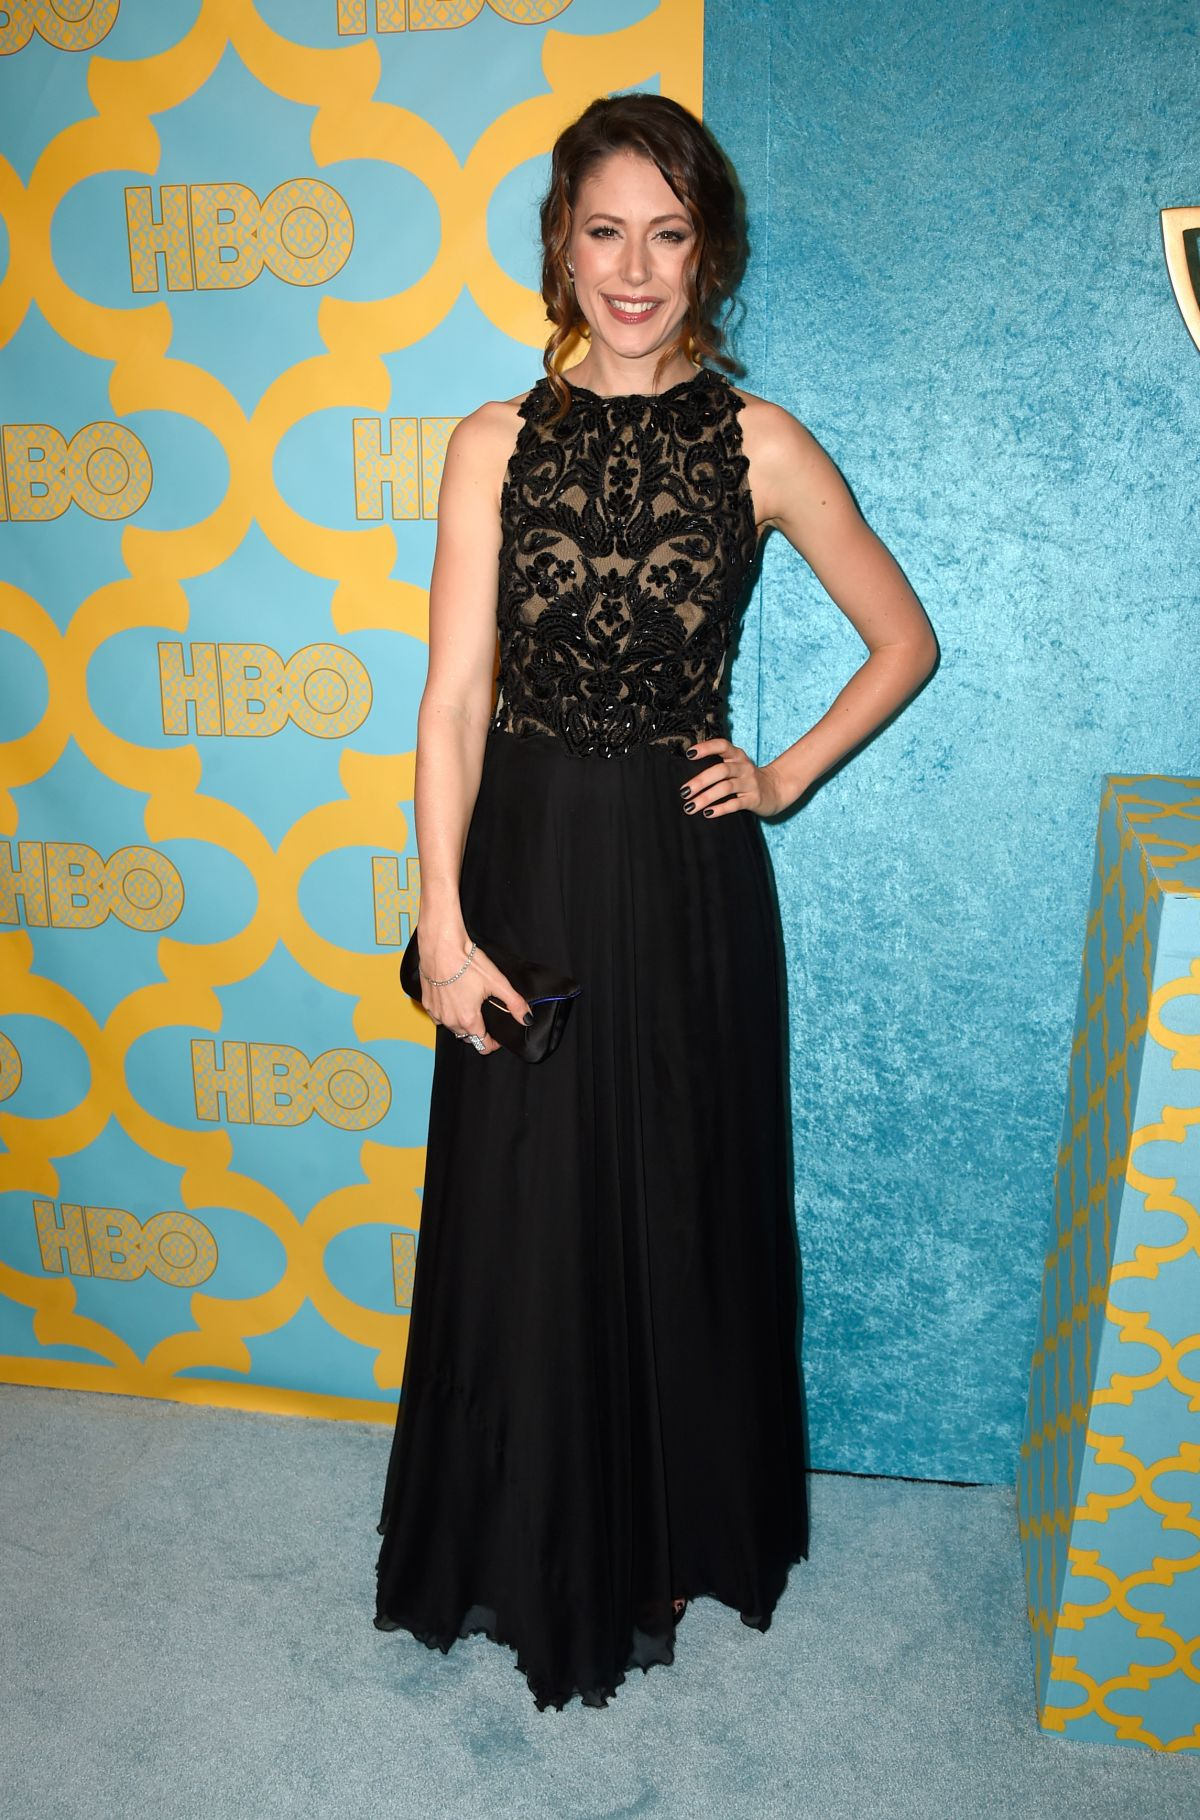 AMANDA CREW at HBO Golden Globes Party in Beverly Hills